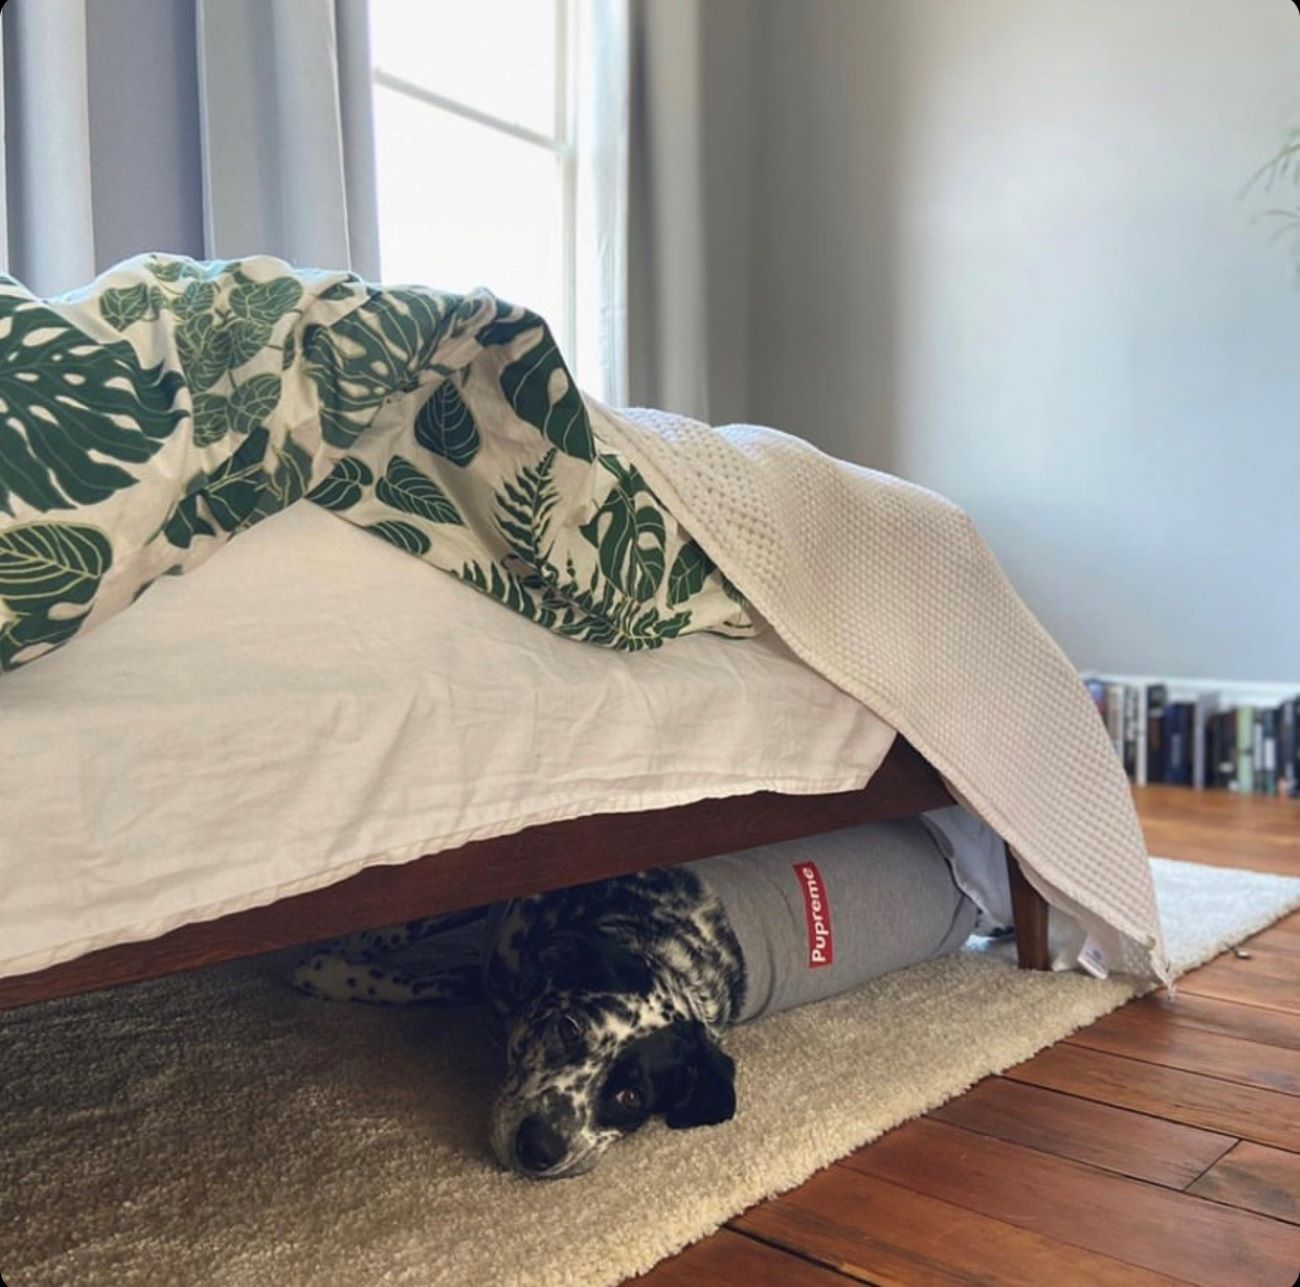 Cleaning (or hiding) under the bed / Image courtesy of Instagram user @lunabugalaska // Published: 4.1.20